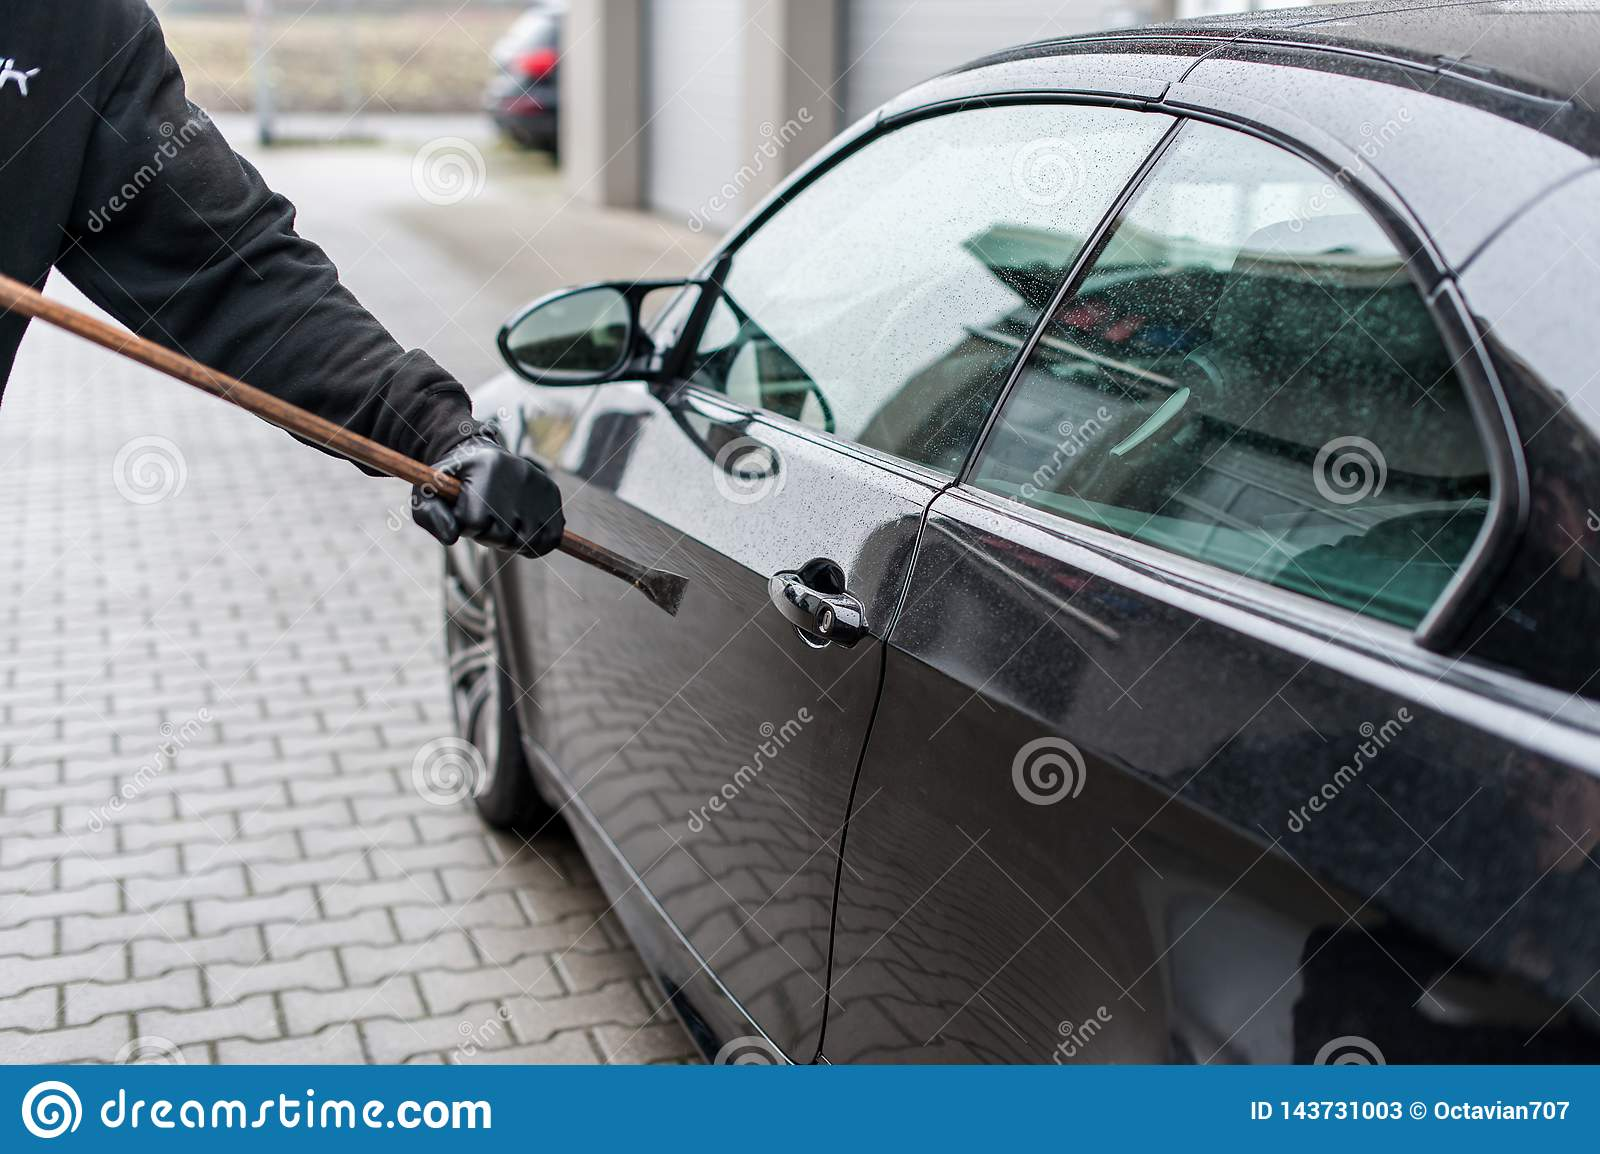 Burglar with gloves try to open a car